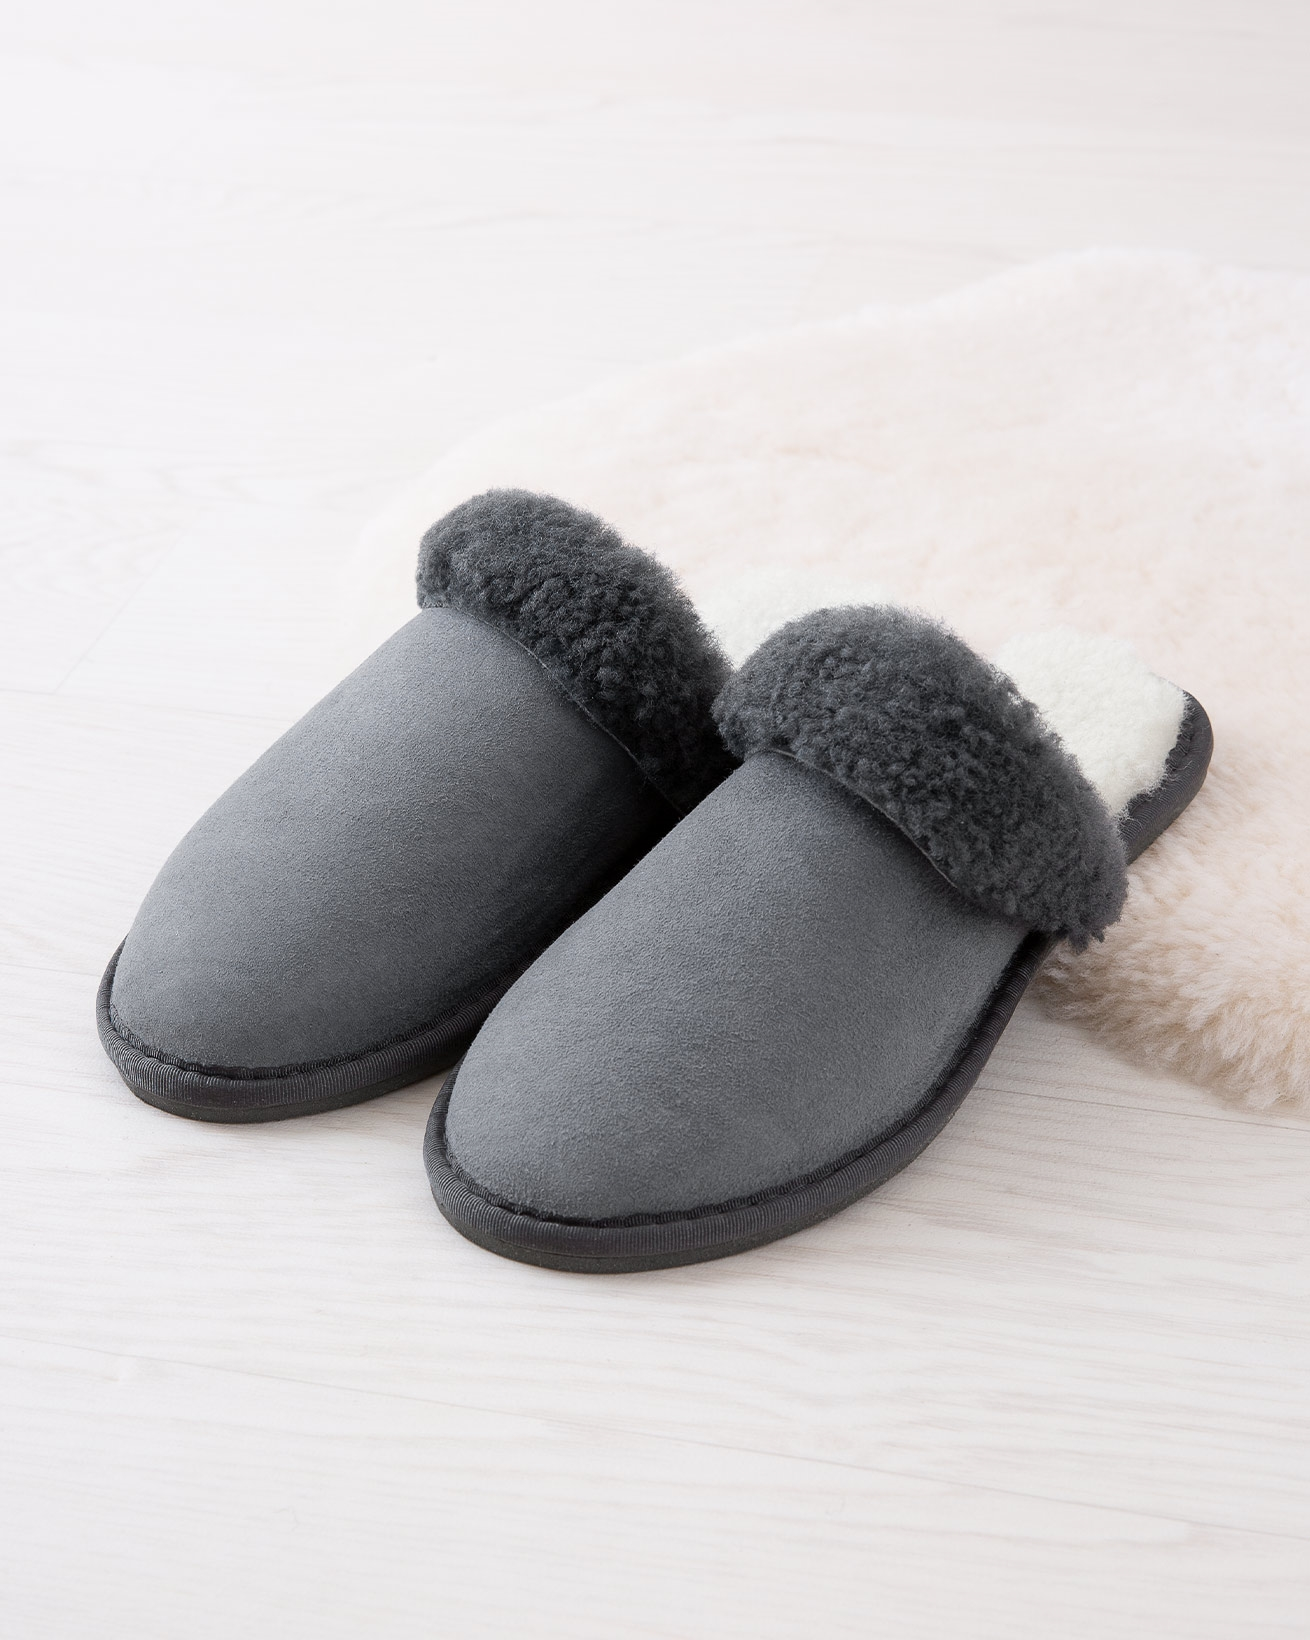 6786_ladies'-turnback-mules_dark-grey_lifestyle_lfs.jpg